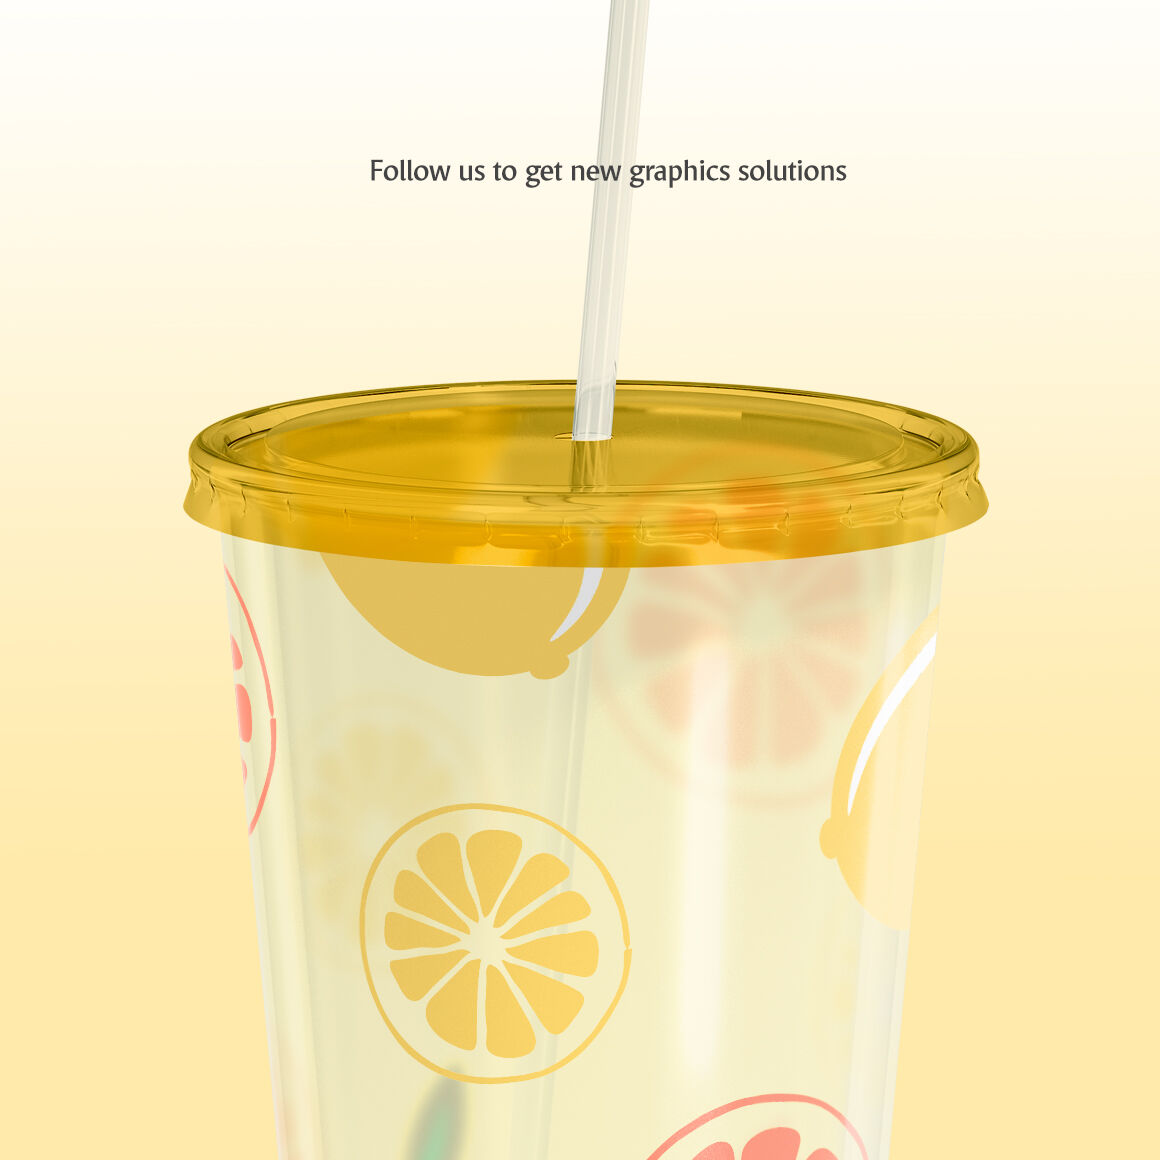 Download 4 Plastic Cups Matte Paper Pack Mockup Front View Yellowimages